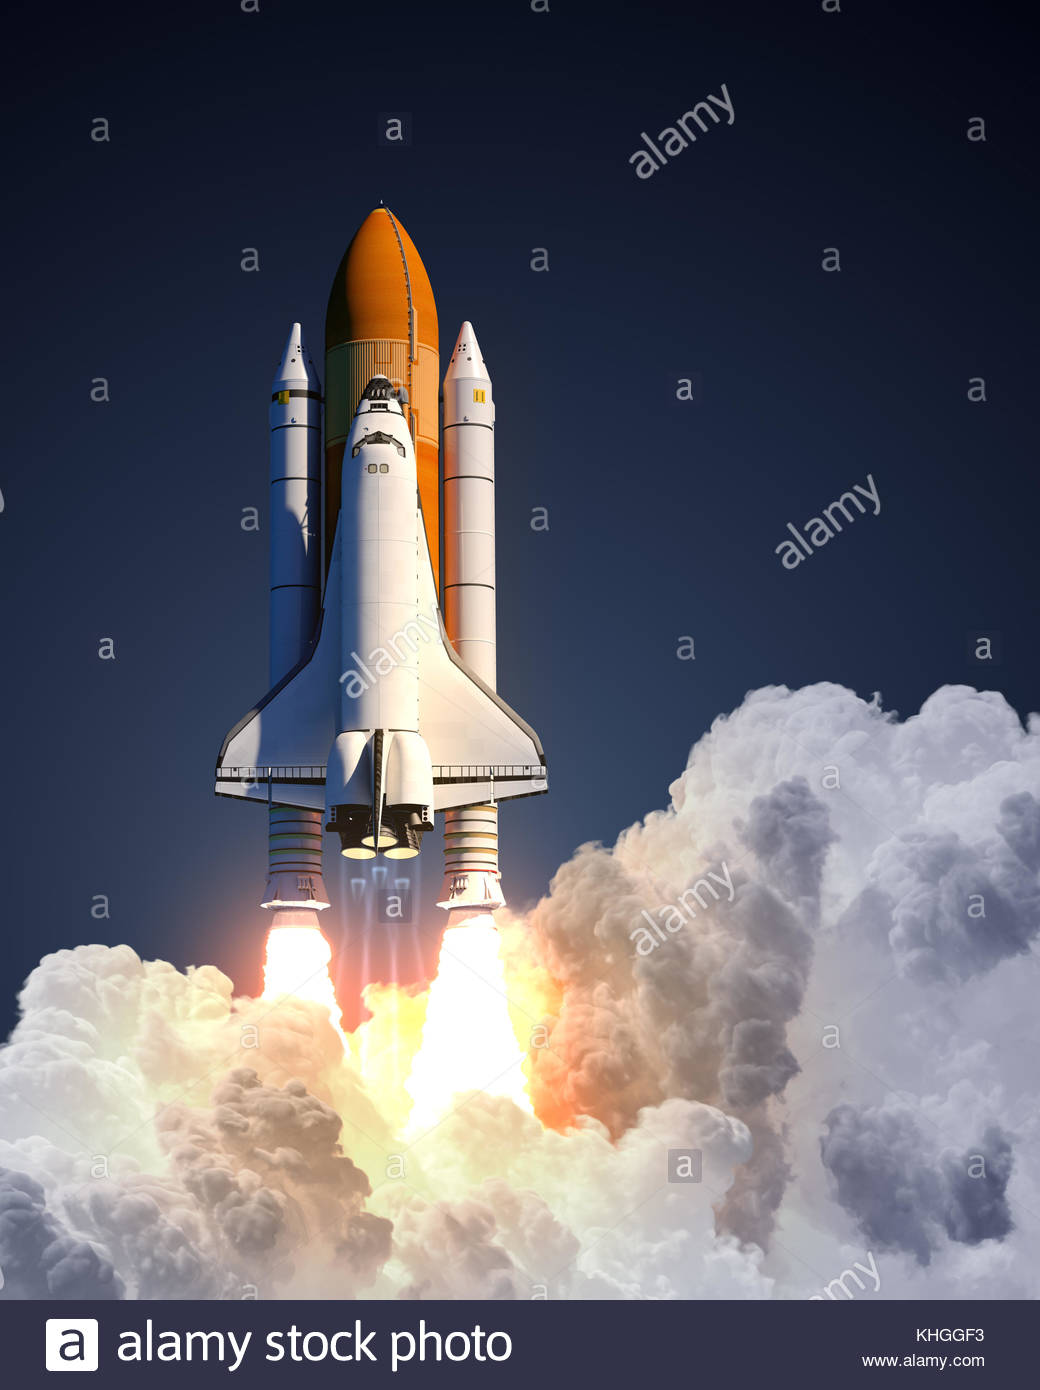 Space Shuttle Launch On Blue Background Stock Photo 165706663   Alamy 1040x1390